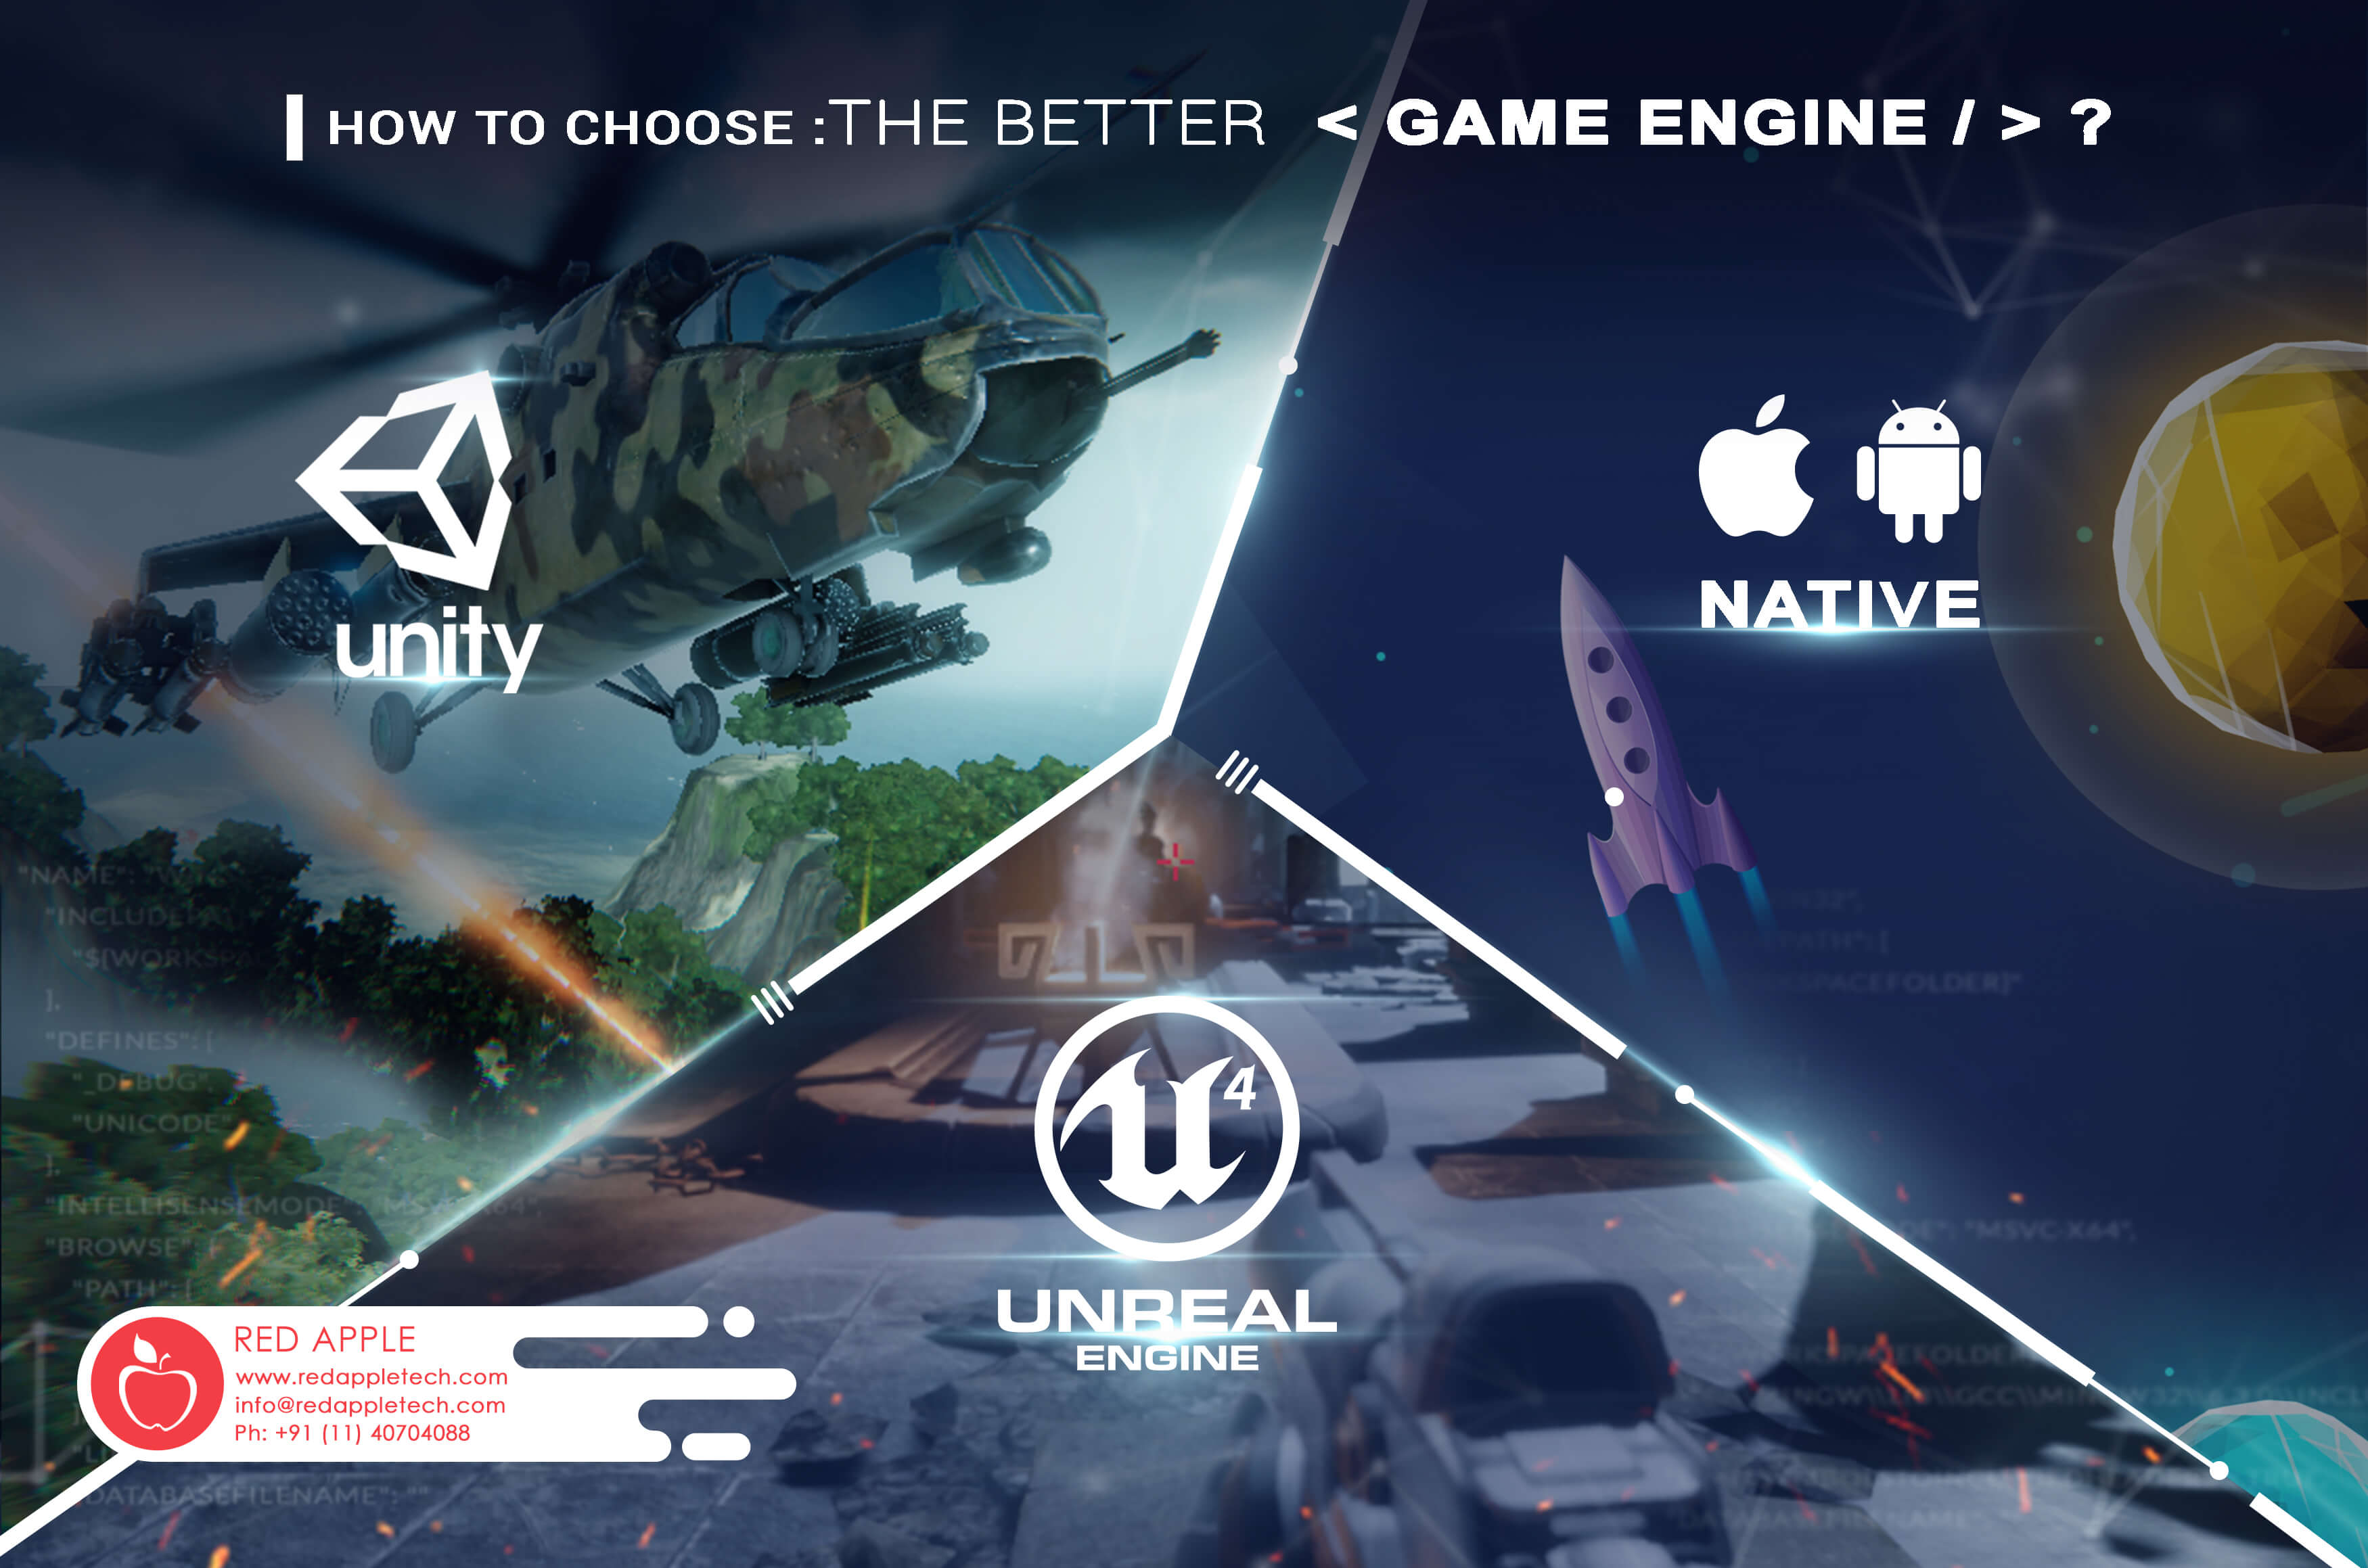 Unity, Unreal, Native : Choose Better Game Engine for Mobile Game